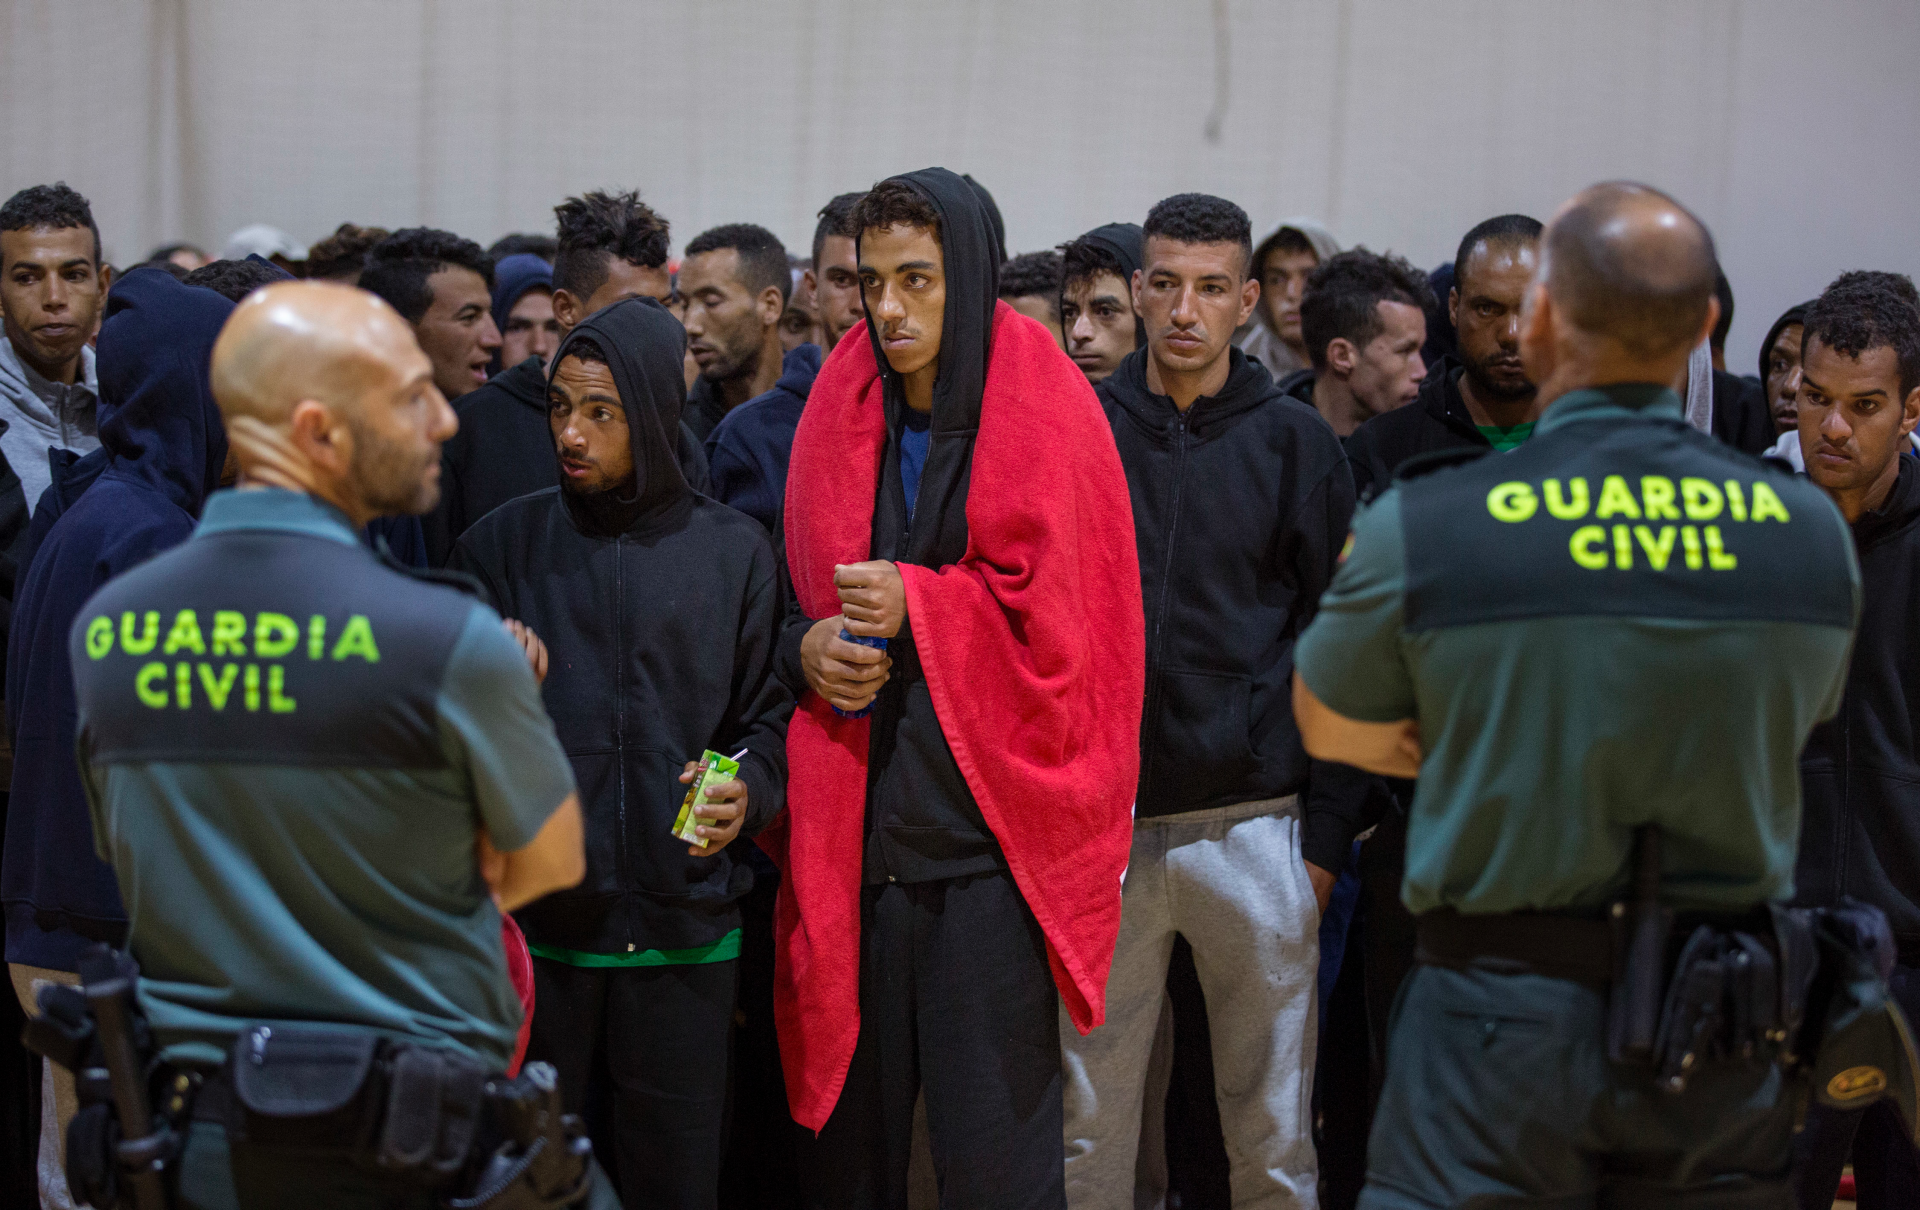 Westlake Legal Group ContentBroker_contentid-ad91f33d451e424ab010c2968b2bc265-1 Migrant arrivals plunge in Spain after deals with Morocco fox-news/world/world-regions/europe fox-news/world/world-regions/africa fox-news/world fnc/world fnc BARCELONA, Spain Associated Press article 39330d86-336b-54bd-bf00-765785559a1c